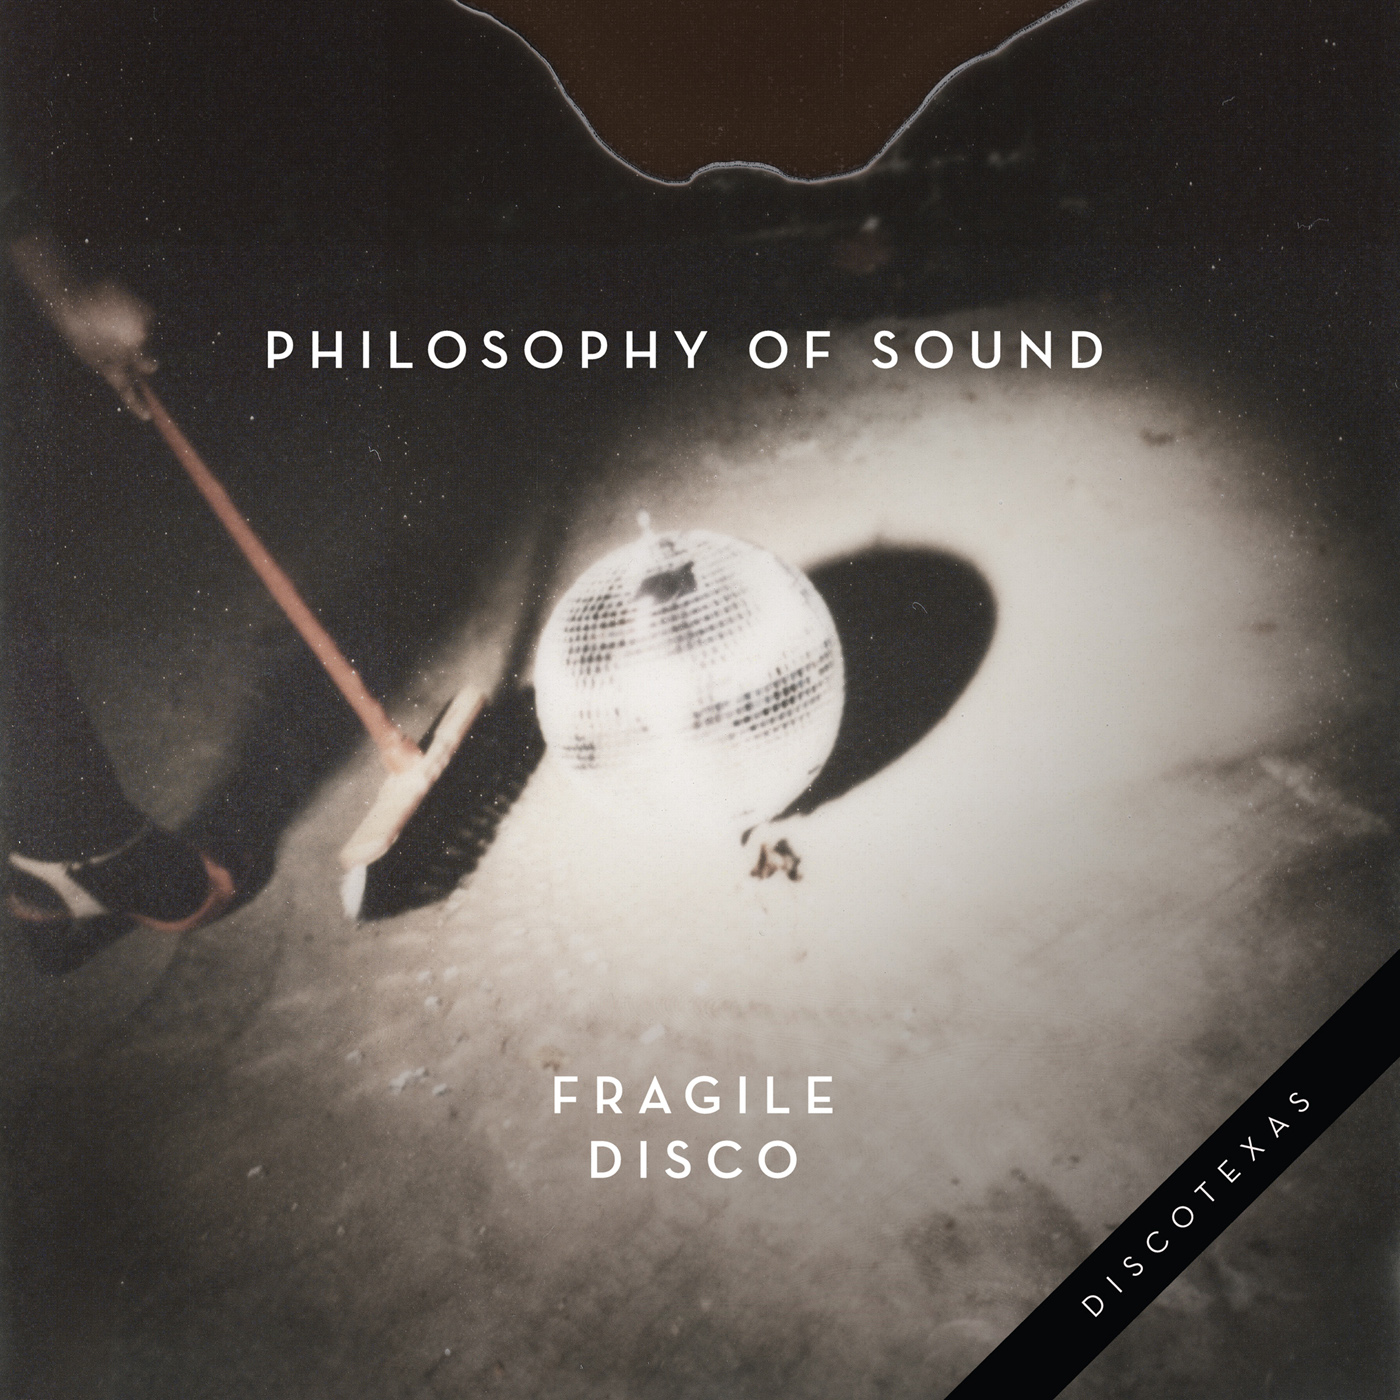 DT025 - Philosophy of Sound - Fragile Disco (2012) cover.jpg